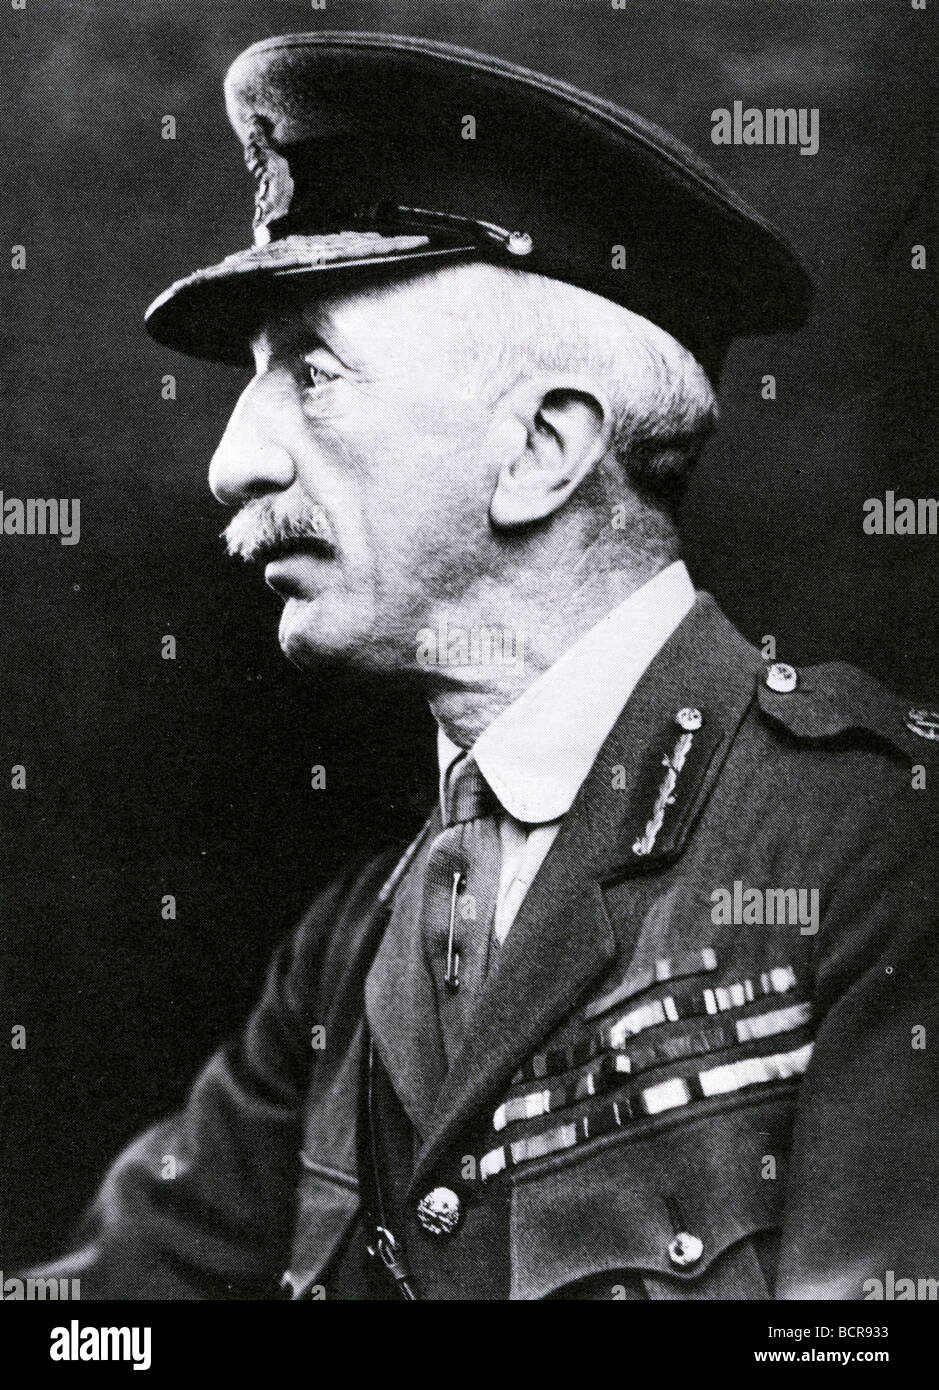 FIELD MARSHALL SIR HENRY WILSON who was killed by the IRA in 1922 Stock Photo